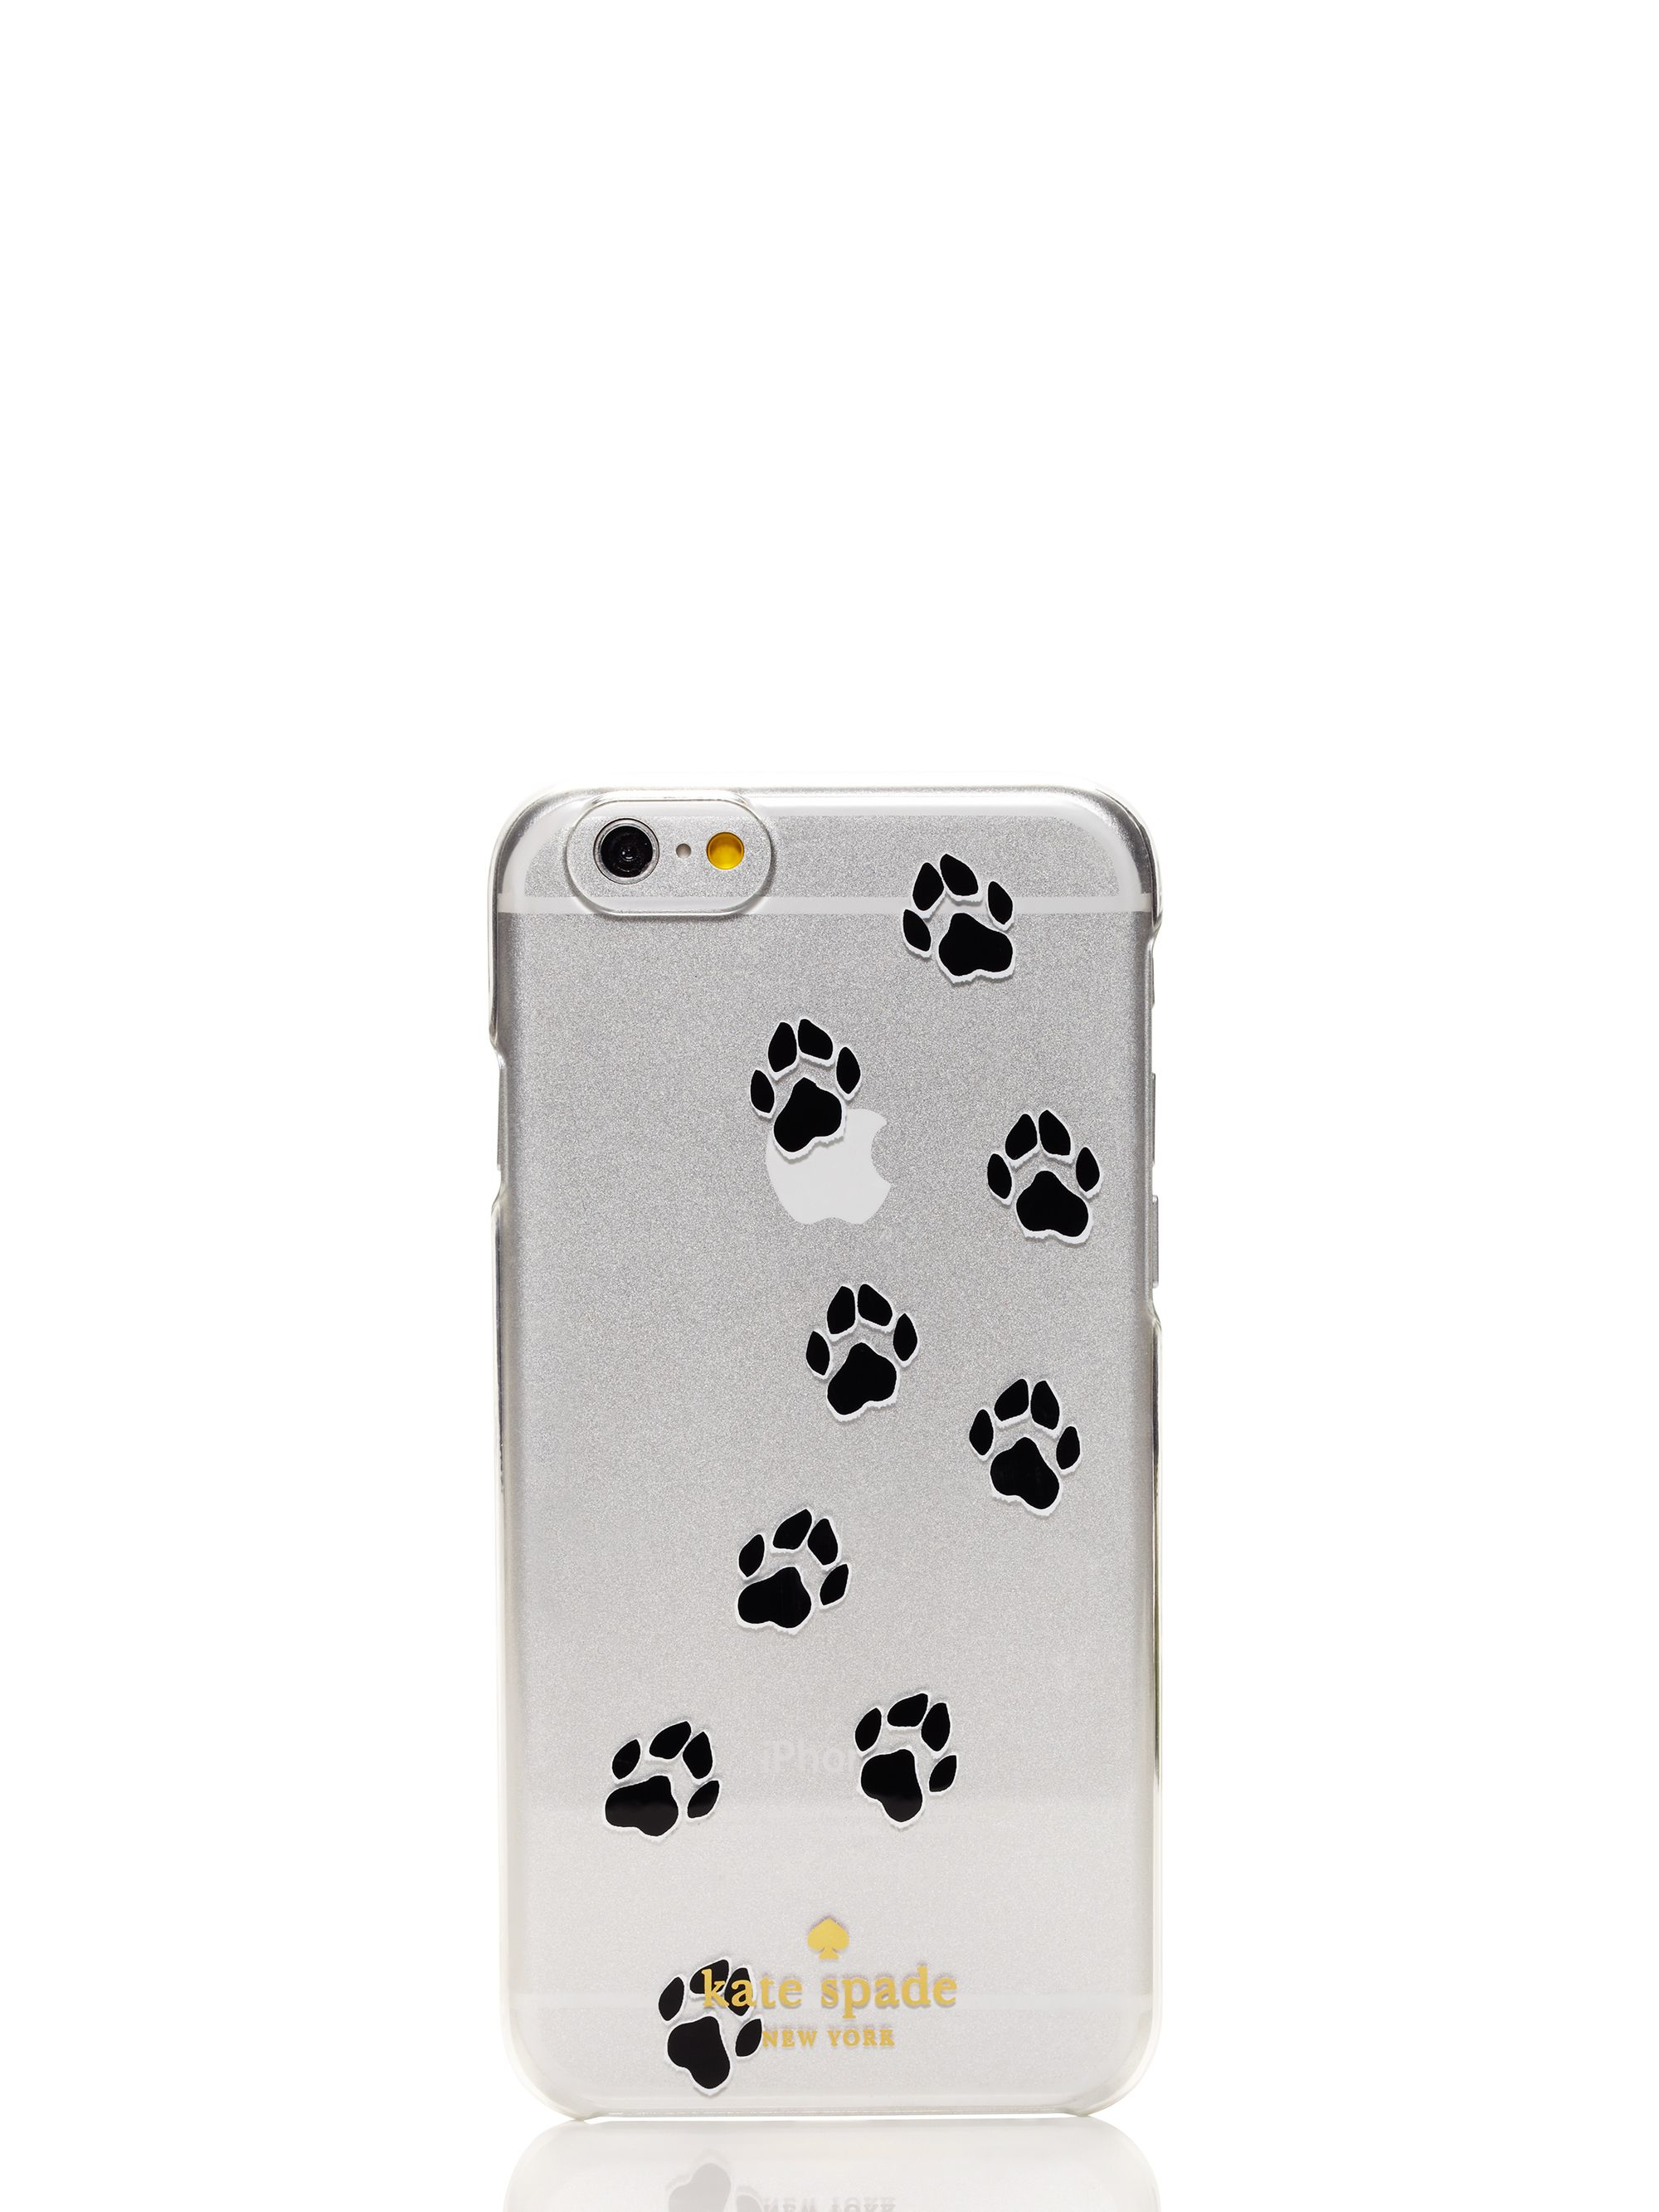 3ad0e5fb6f Kate Spade Paw Print Iphone 6 Case in White - Lyst